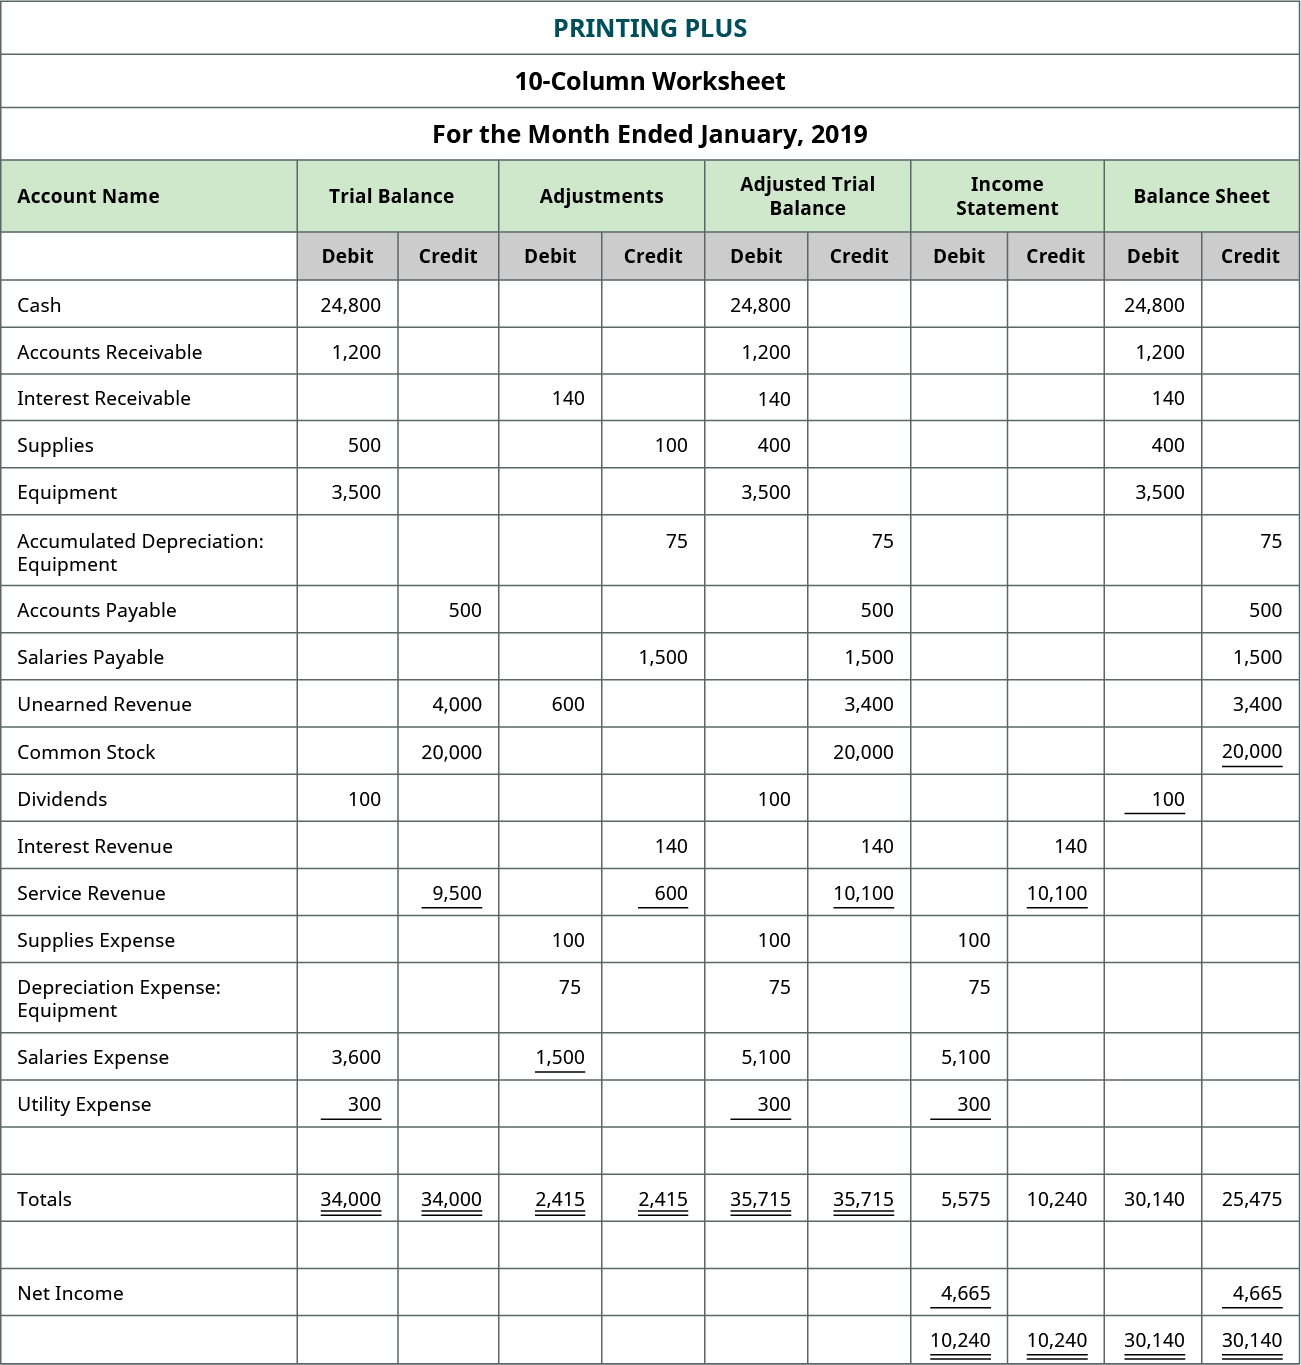 Printing Plus, Ten-column Worksheet, For Month Ended January 2019. From left to right, columns are Account Name, Trial Balance, Adjustments, Adjusted Trial Balance, Income Statement, and Balance Sheet. Trial Balance columns. Accounts with debit balances: Cash 24,800; Accounts Receivable 1,200; Supplies 500; Equipment 3,500; Dividends 100; Salaries Expense 3,600; Utility Expense 300; Total Debits 34,000. Accounts with credit balances: Accounts Payable 500; Unearned Revenue 4,000; Common Stock 20,000; Service Revenue 9,500; Total Credits 34,000. Adjustment columns. Debit adjustments include: Interest Receivable 140; Unearned Revenue 600; Supplies Expense 100; Depreciation Expense: Equipment 75; Salaries Expense 1,500; Total debit adjustments 2,415. Credit adjustments include: Supplies 100; Accumulated Depreciation Equipment 75; Salaries Payable 1,500; Interest Revenue 140; Service Revenue 600; Total credit adjustments 2,415. Adjusted Trial Balance columns. Adjusted debit balances: Cash $24,800; Accounts Receivable 1,200; Interest Receivable 140; Supplies 400; Equipment 3,500; Dividends 100; Supplies Expense 100; Depreciation Expense Equipment 75; Salaries Expense 5,100; Utility Expense 300; Total Adjusted Debits $35,715. Adjusted credit balances: Accumulated Depreciation Equipment 75; Accounts Payable, 500; Salaries Payable 1,500; Unearned Revenue 3,400; Common Stock 20,000; Interest Revenue 140; Service Revenue 10,100; Total Adjusted Credits $35,715. Income Statement columns. Credit column: Interest Revenue 140; Service Revenue 10,100; Total Credit Column 10,240. Debit column: Supplies Expense 100; Depreciation Expense Equipment 75; Salaries Expense 5,100; Utility Expense 300; Sub-Total Debit Column 5,575; Net Income 4,665; Total Debit Column 10,240. Balance Sheet columns. Debit column: Cash $24,800; Accounts Receivable 1,200; Interest Receivable 140; Supplies 400; Equipment 3,500; Dividends 100; Total debit column 30,140. Credit column: Accumulated Depreciation Equi